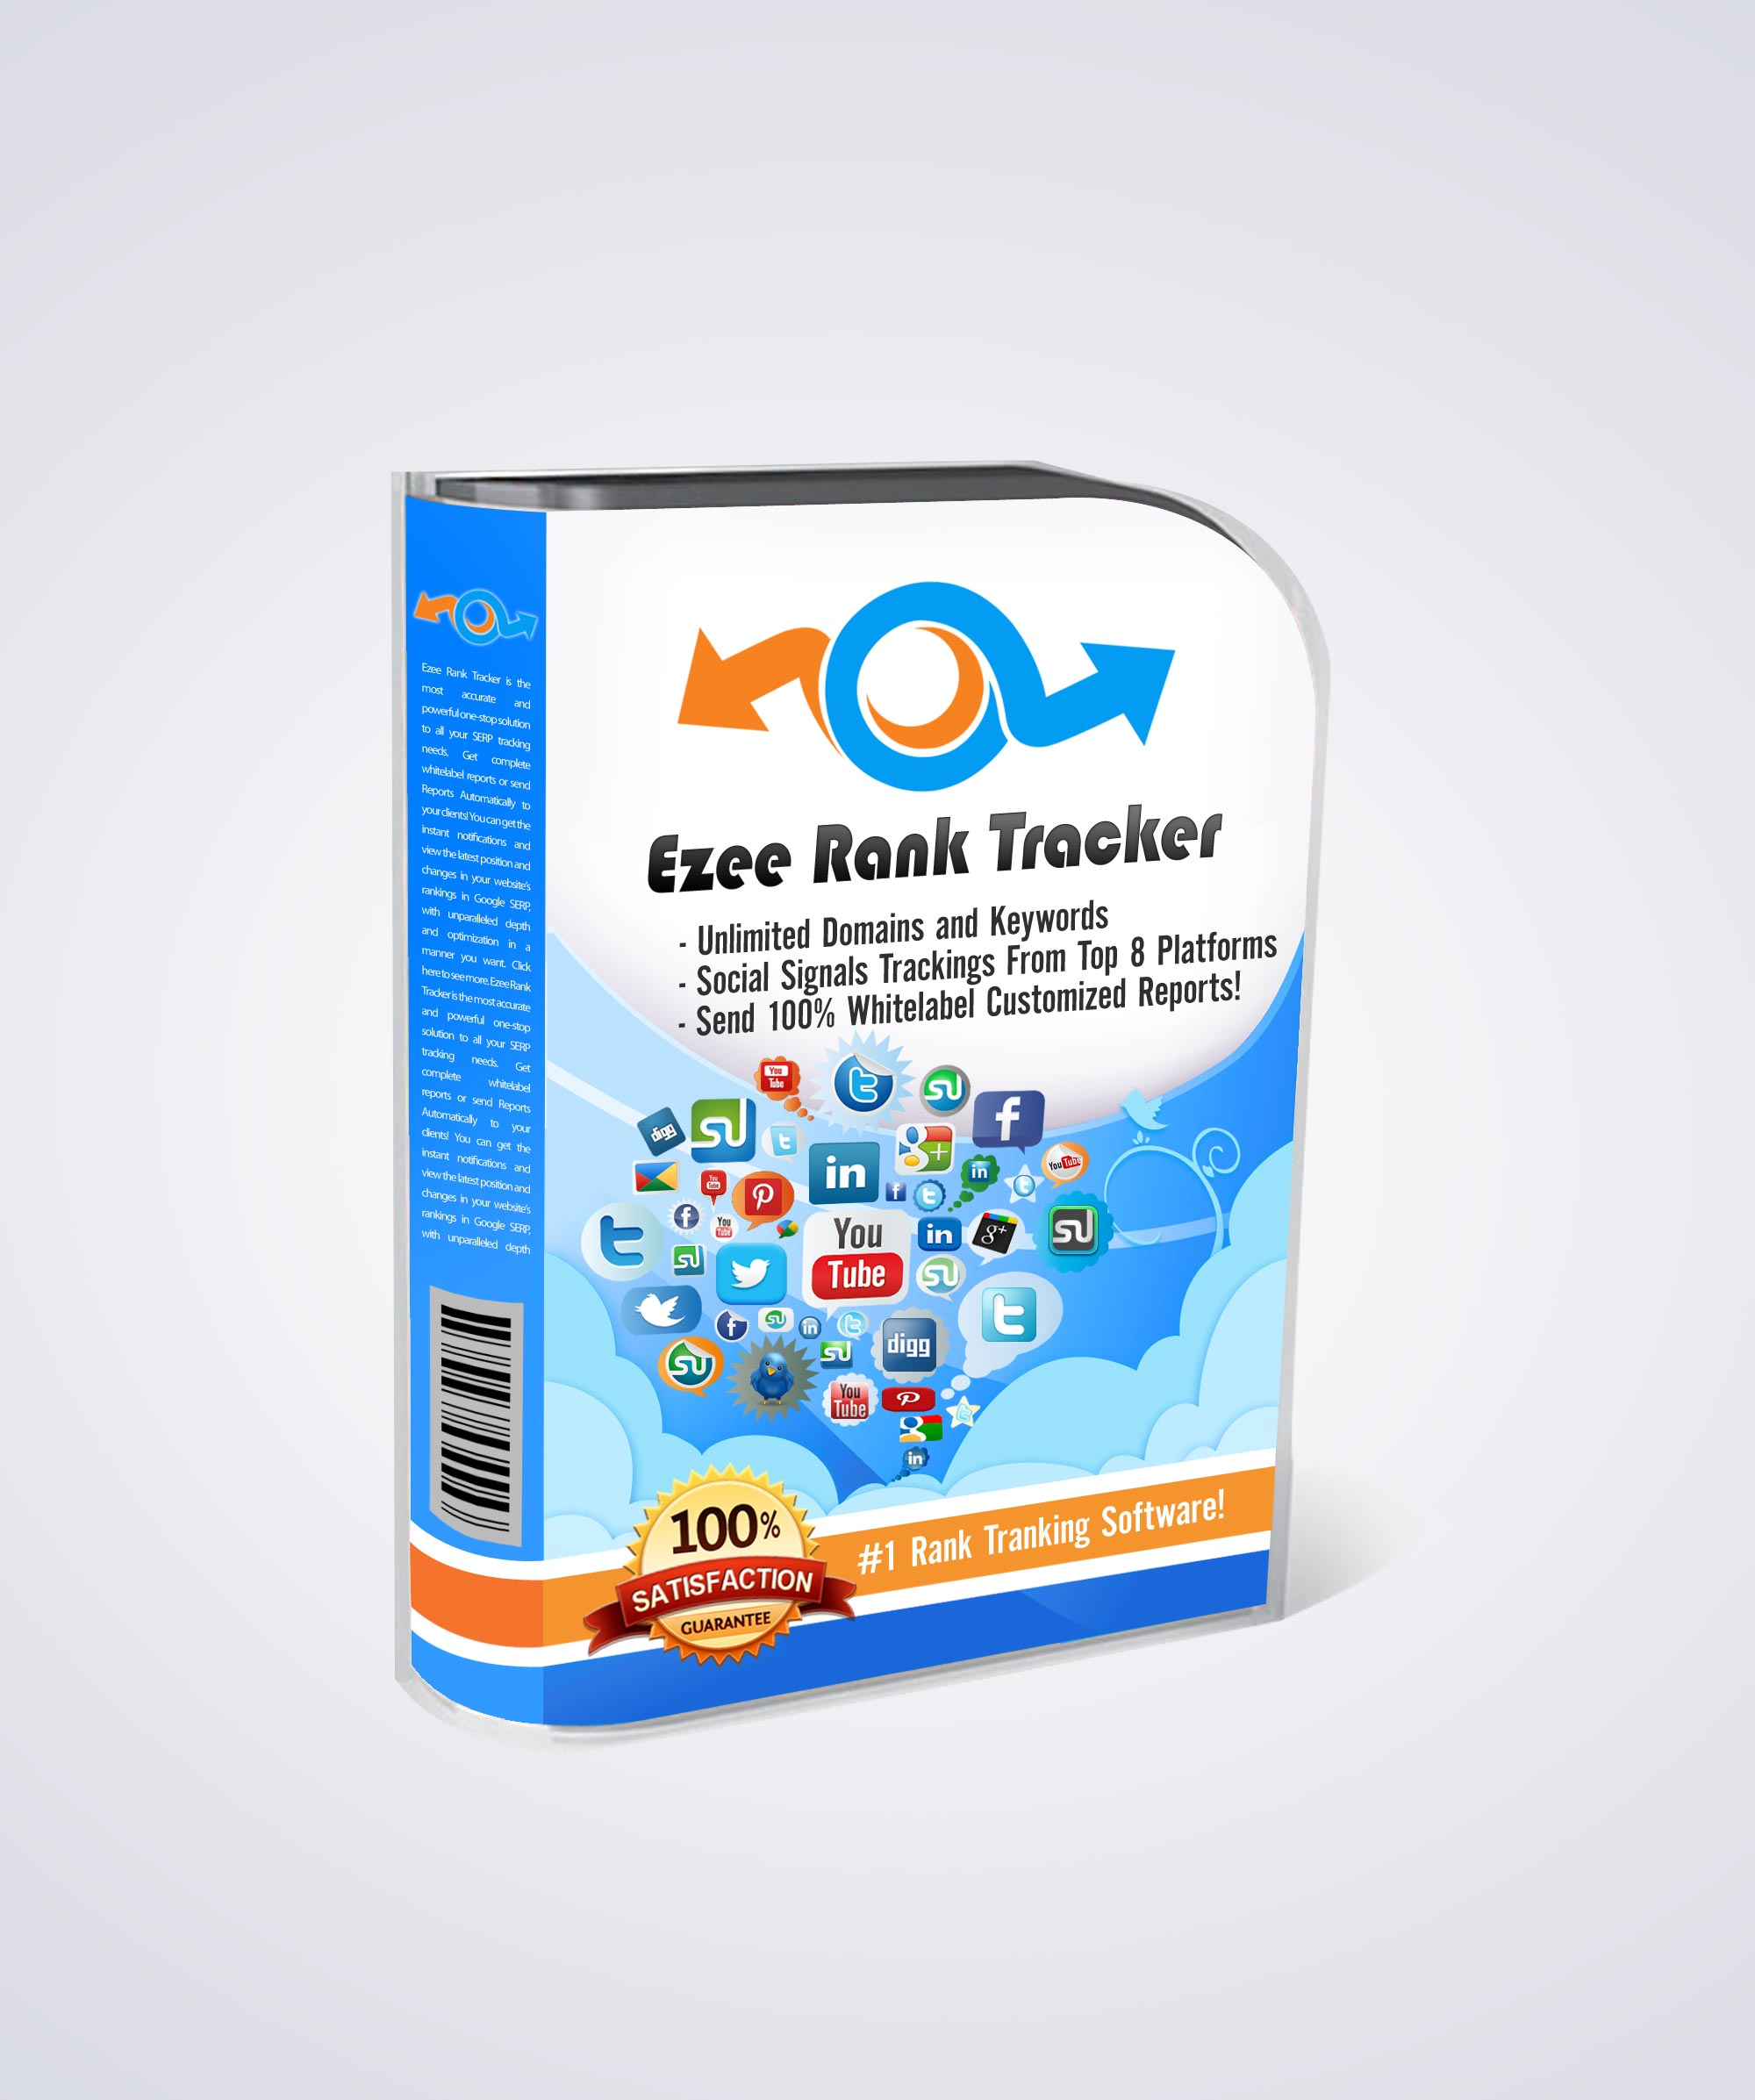 Ezee Rank Tracker Pro Product Box